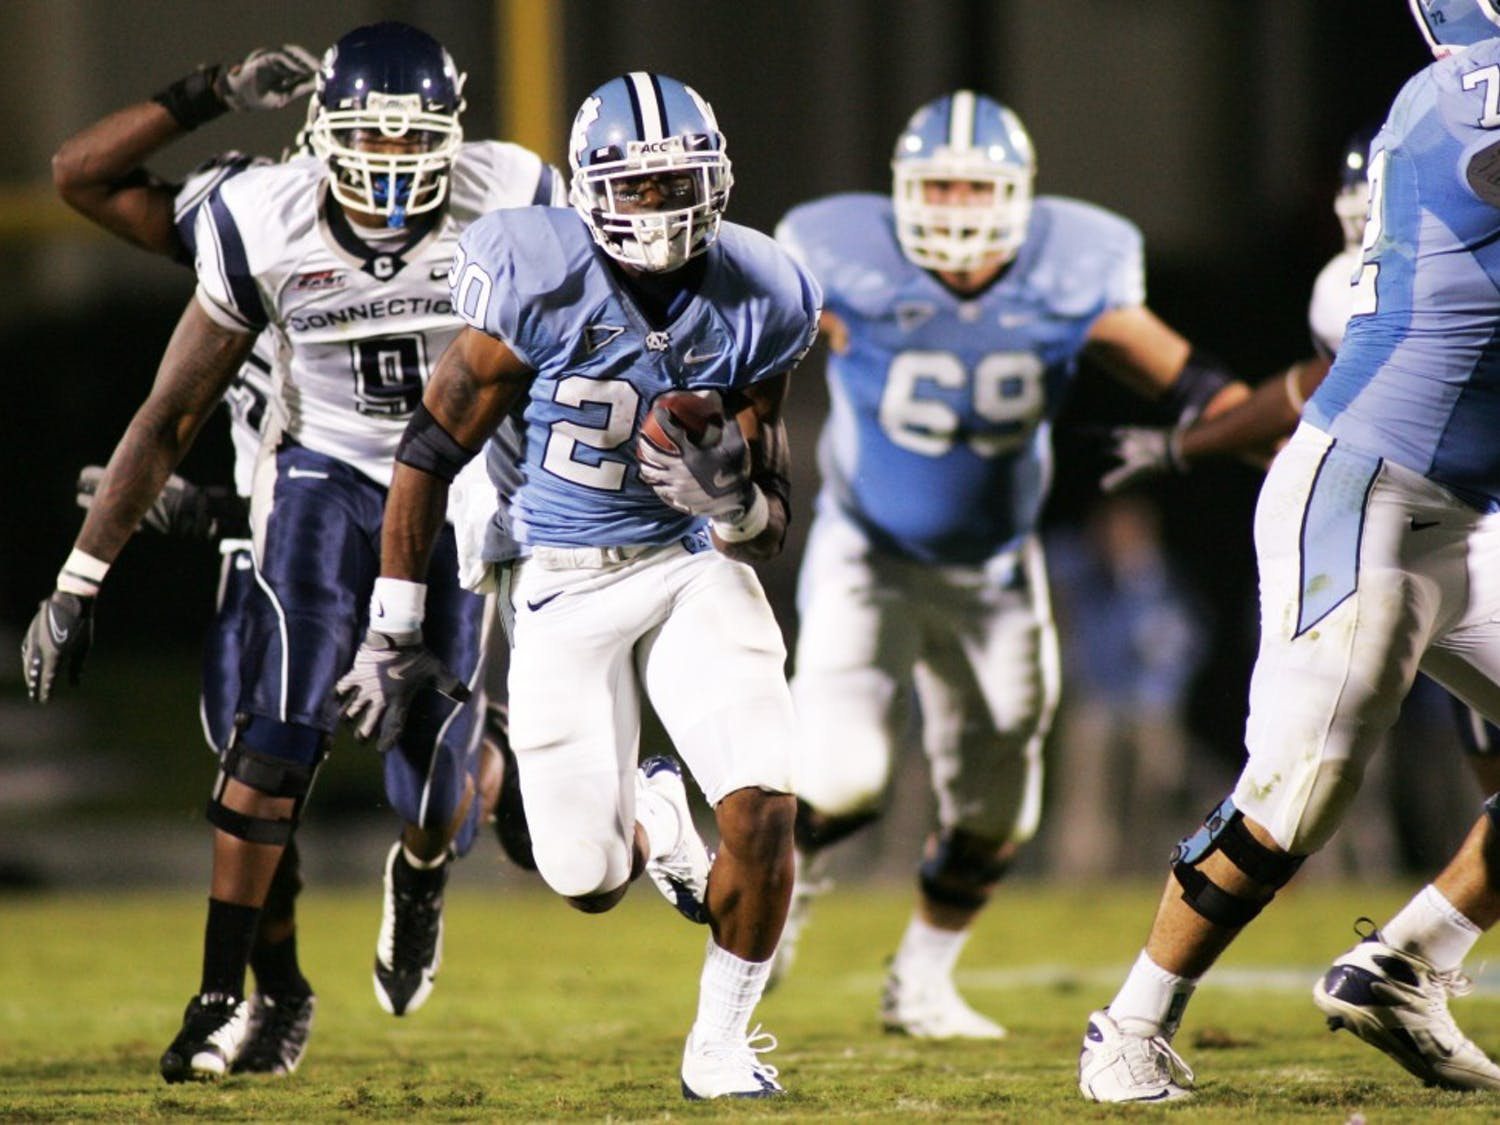 """Shaun Draughn scored UNC?s third touchdown of the night on this 39-yard run in the third quarter. The sophomore"""" who played safety last year had 109 yards on 19 carries and never lostyards against the Huskies. ?Ever since I moved to running back I?ve been having fun? Draughn said."""